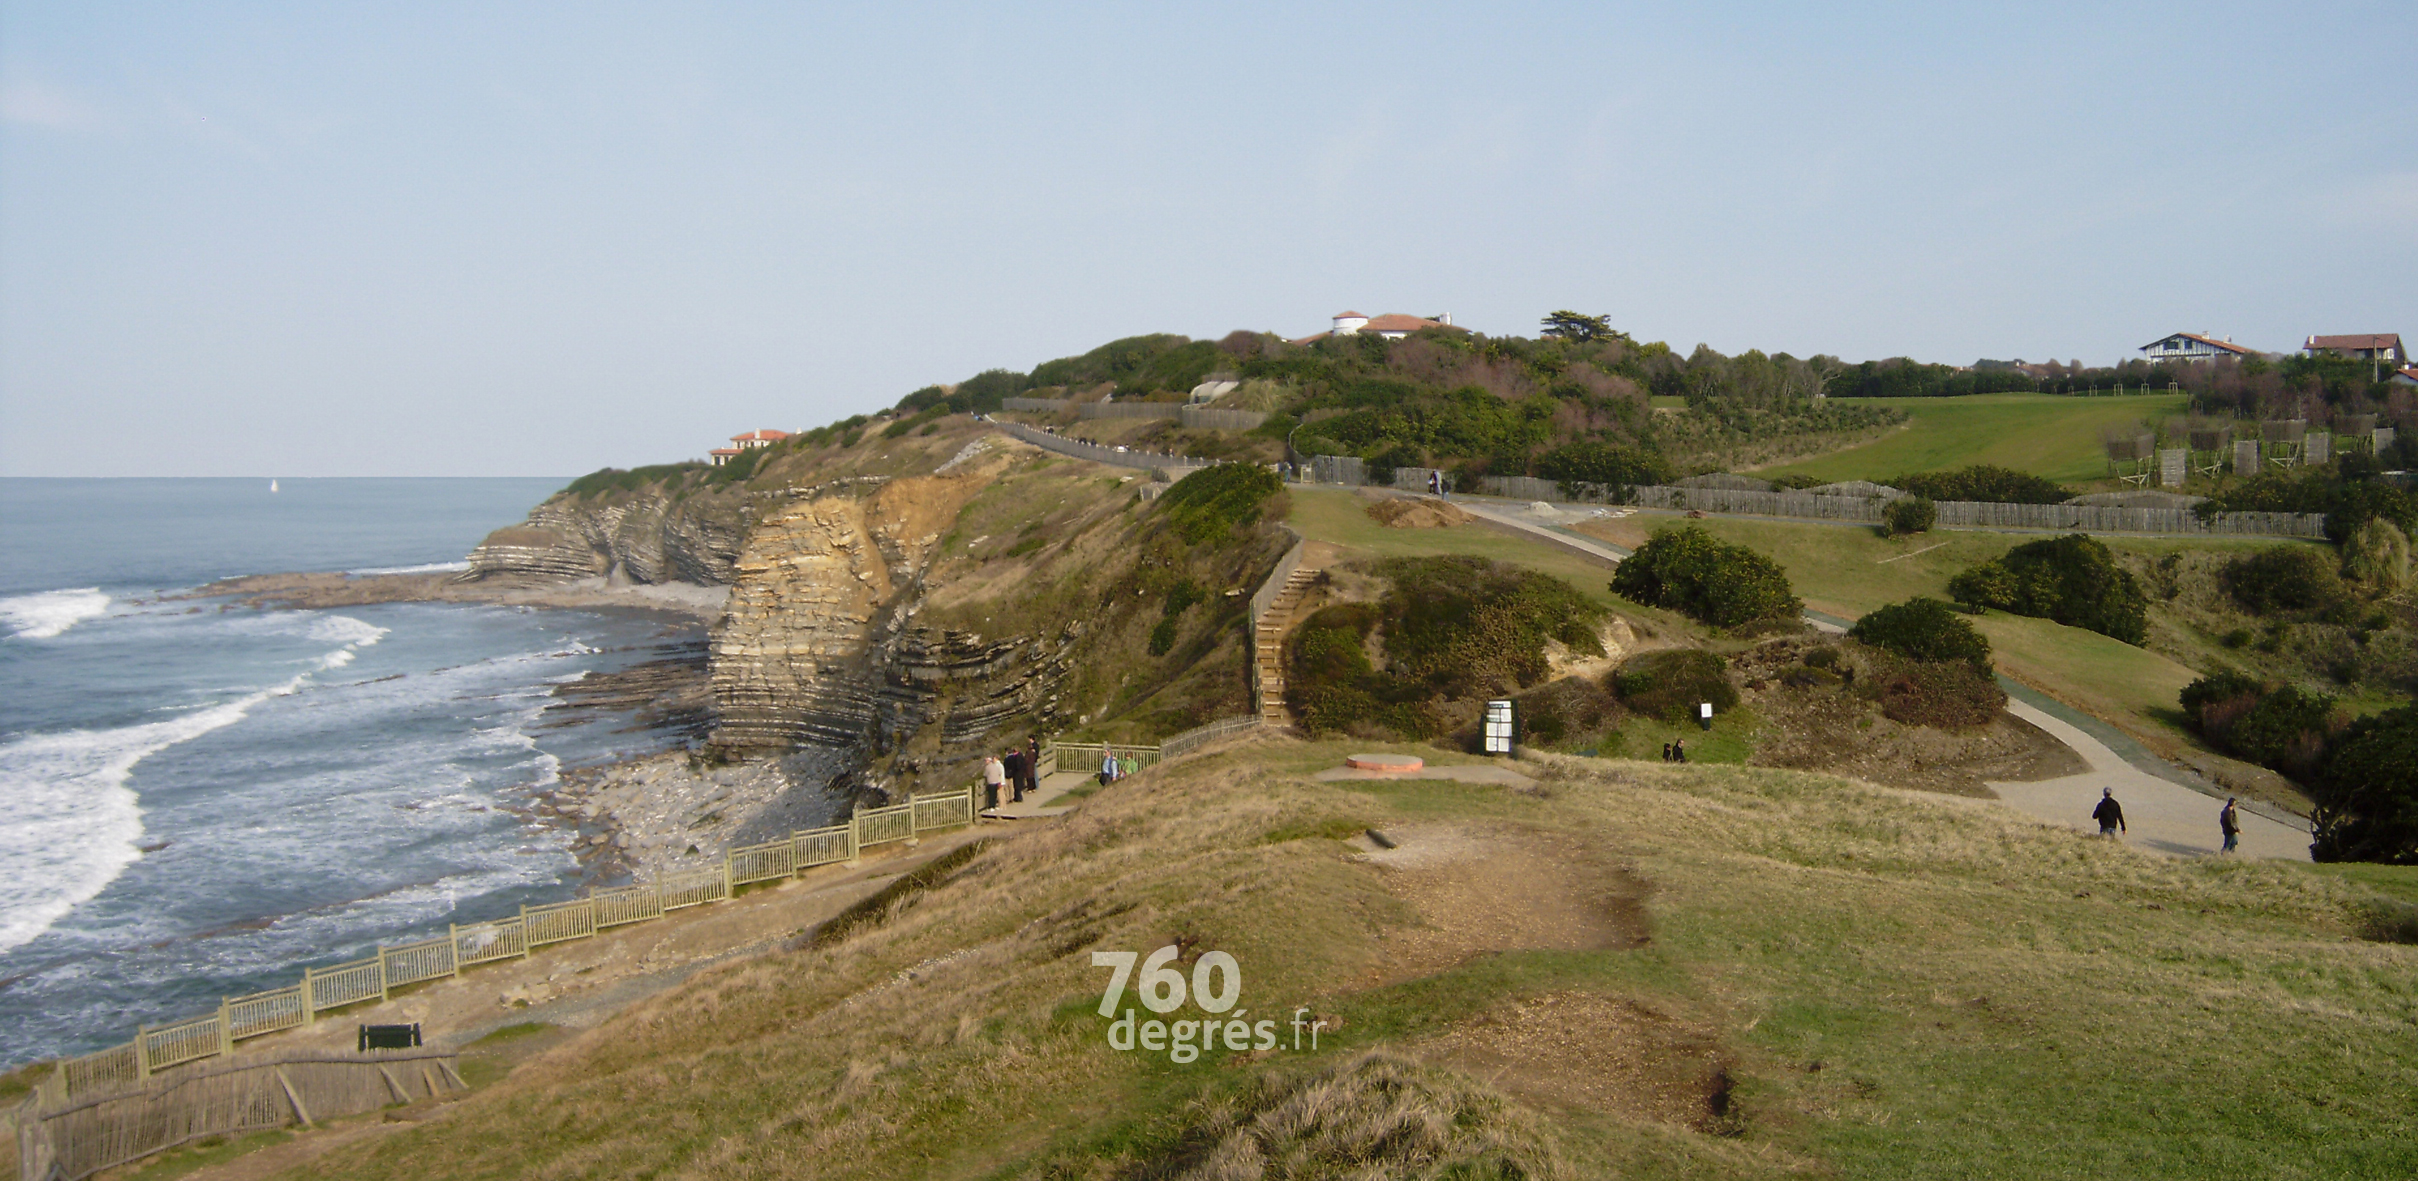 760degres-pays-basque-saint-jean-de-luz-06